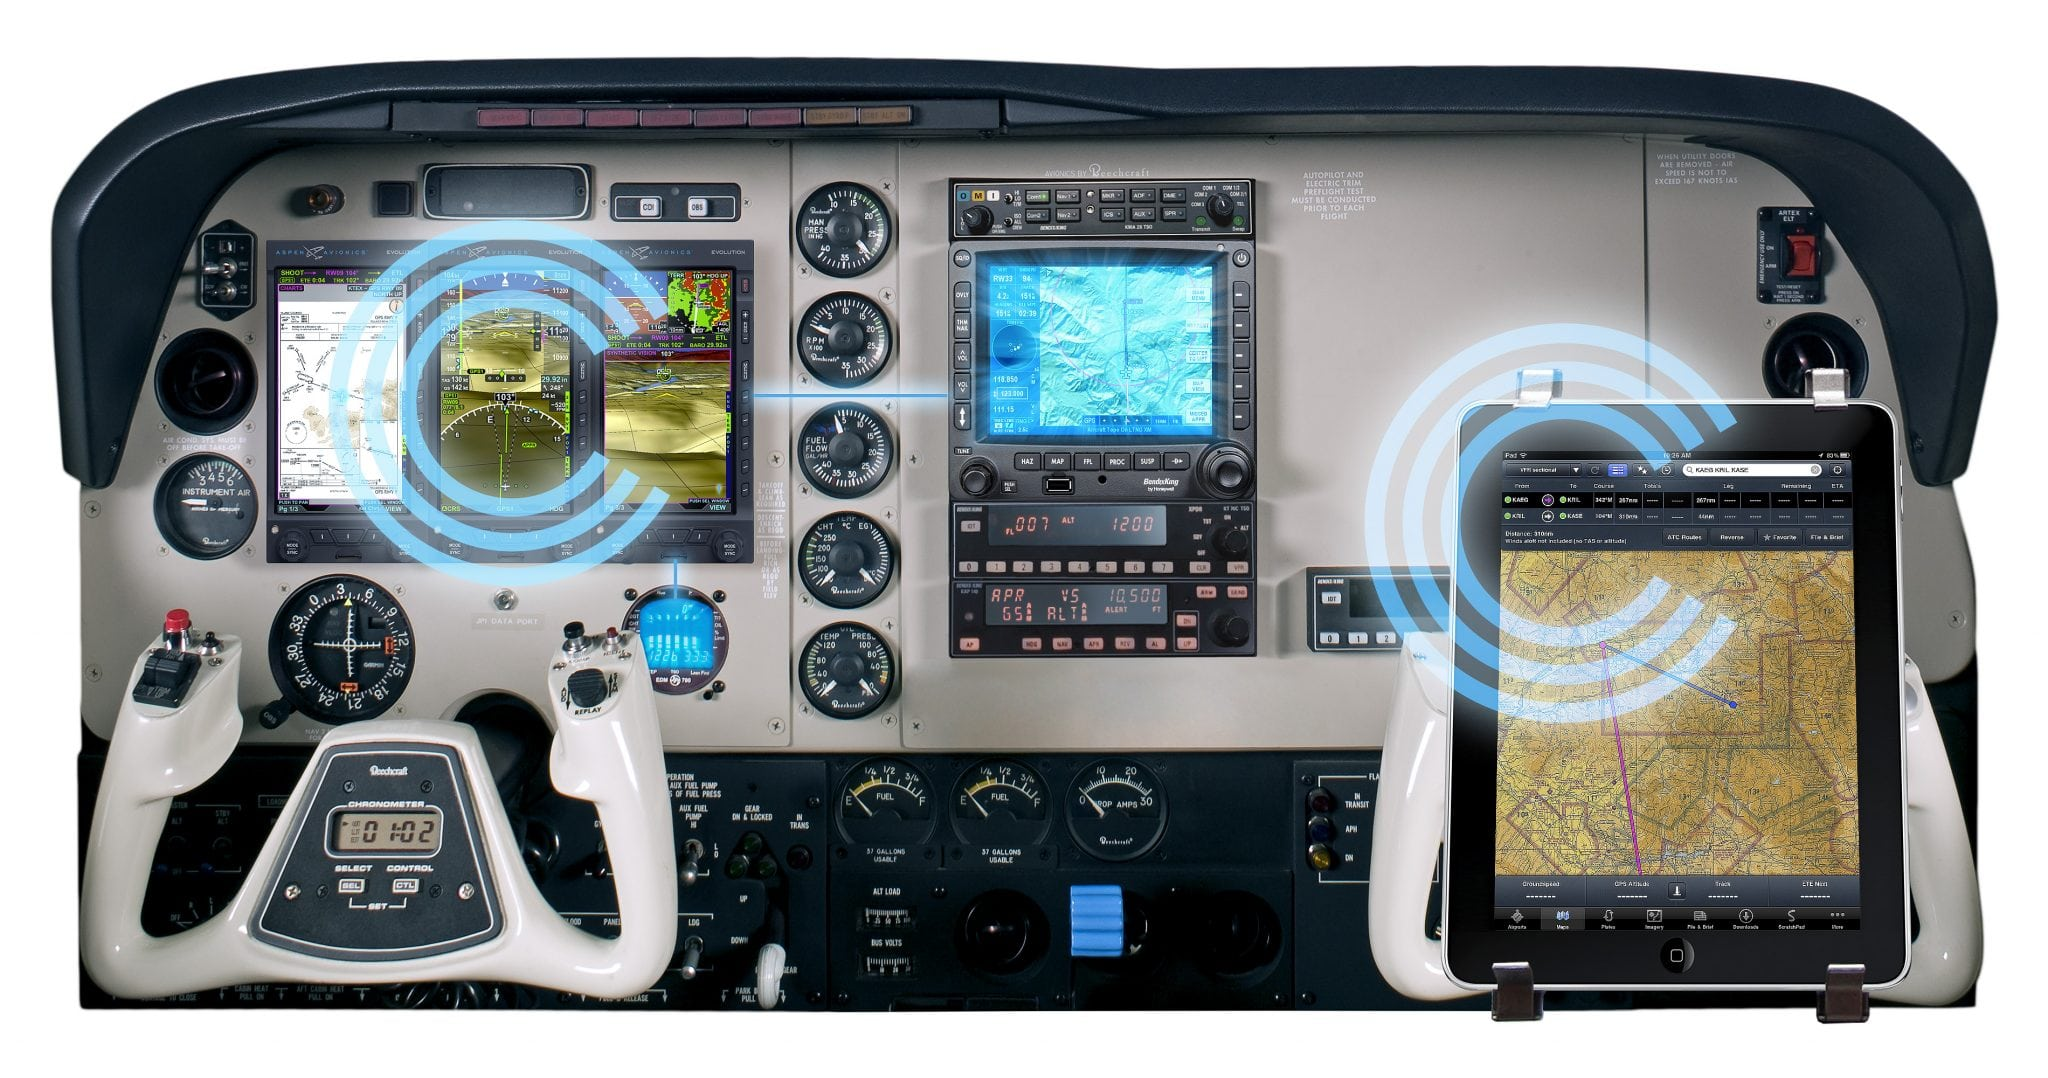 The connected panel from Aspen Avionics